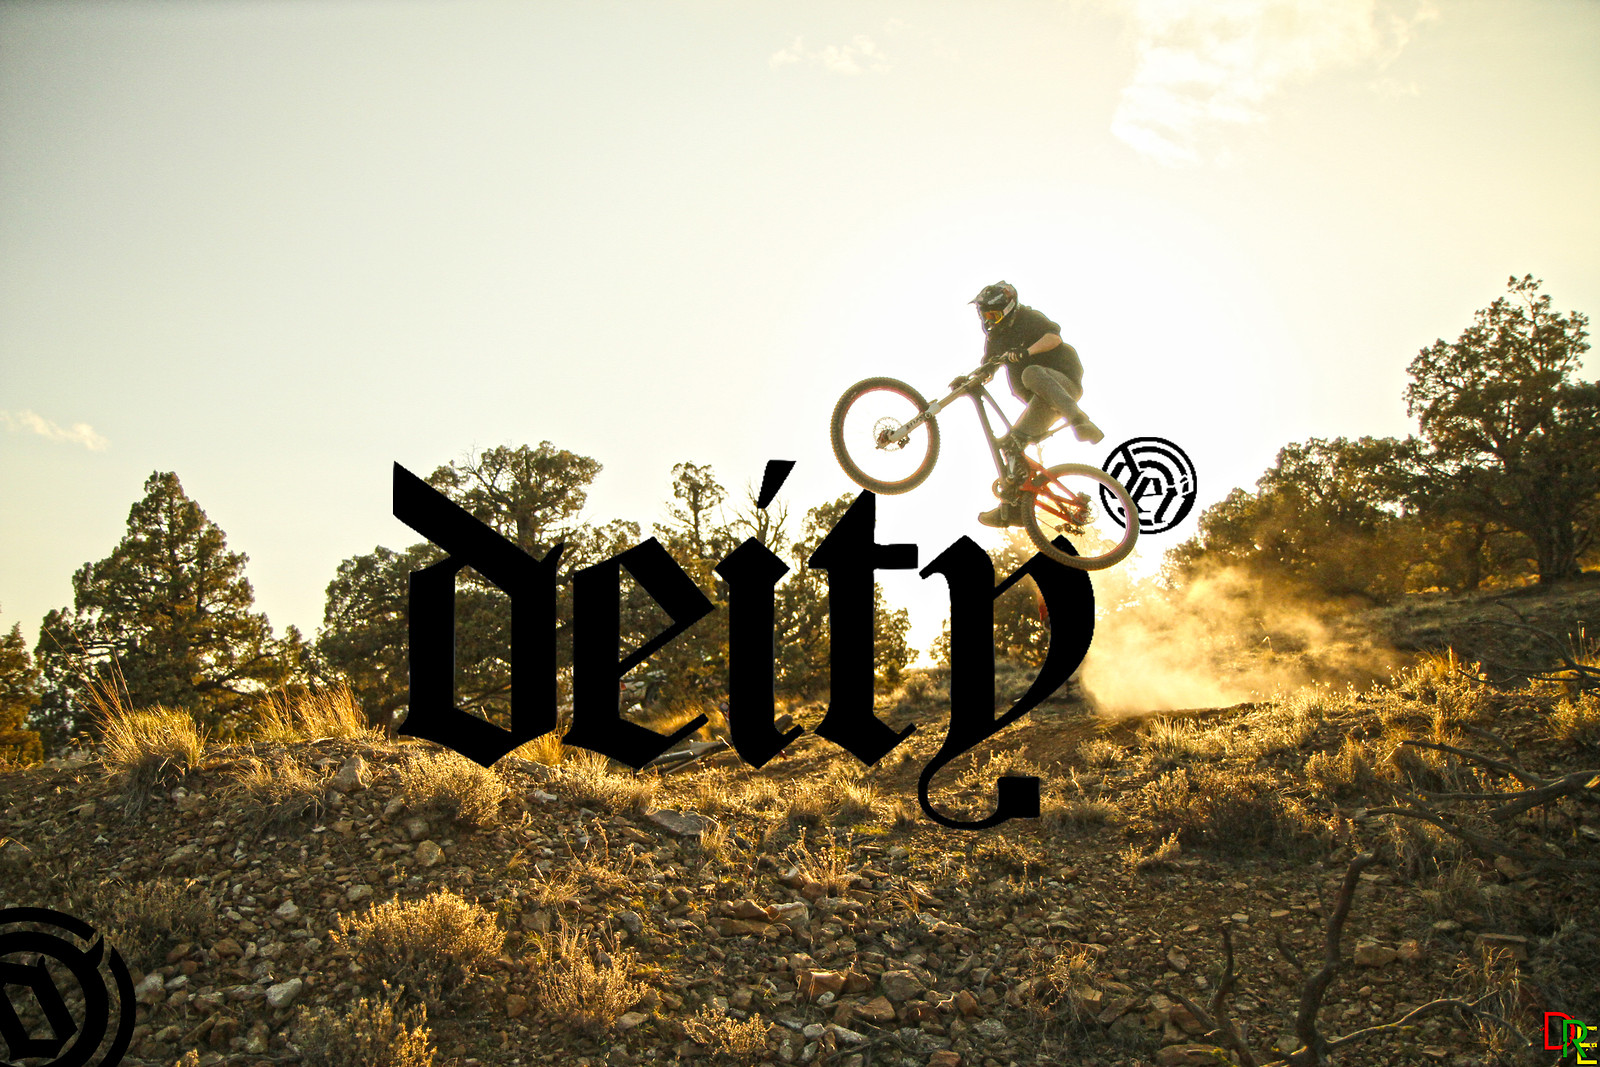 NikNak - norcalproductions - Mountain Biking Pictures - Vital MTB